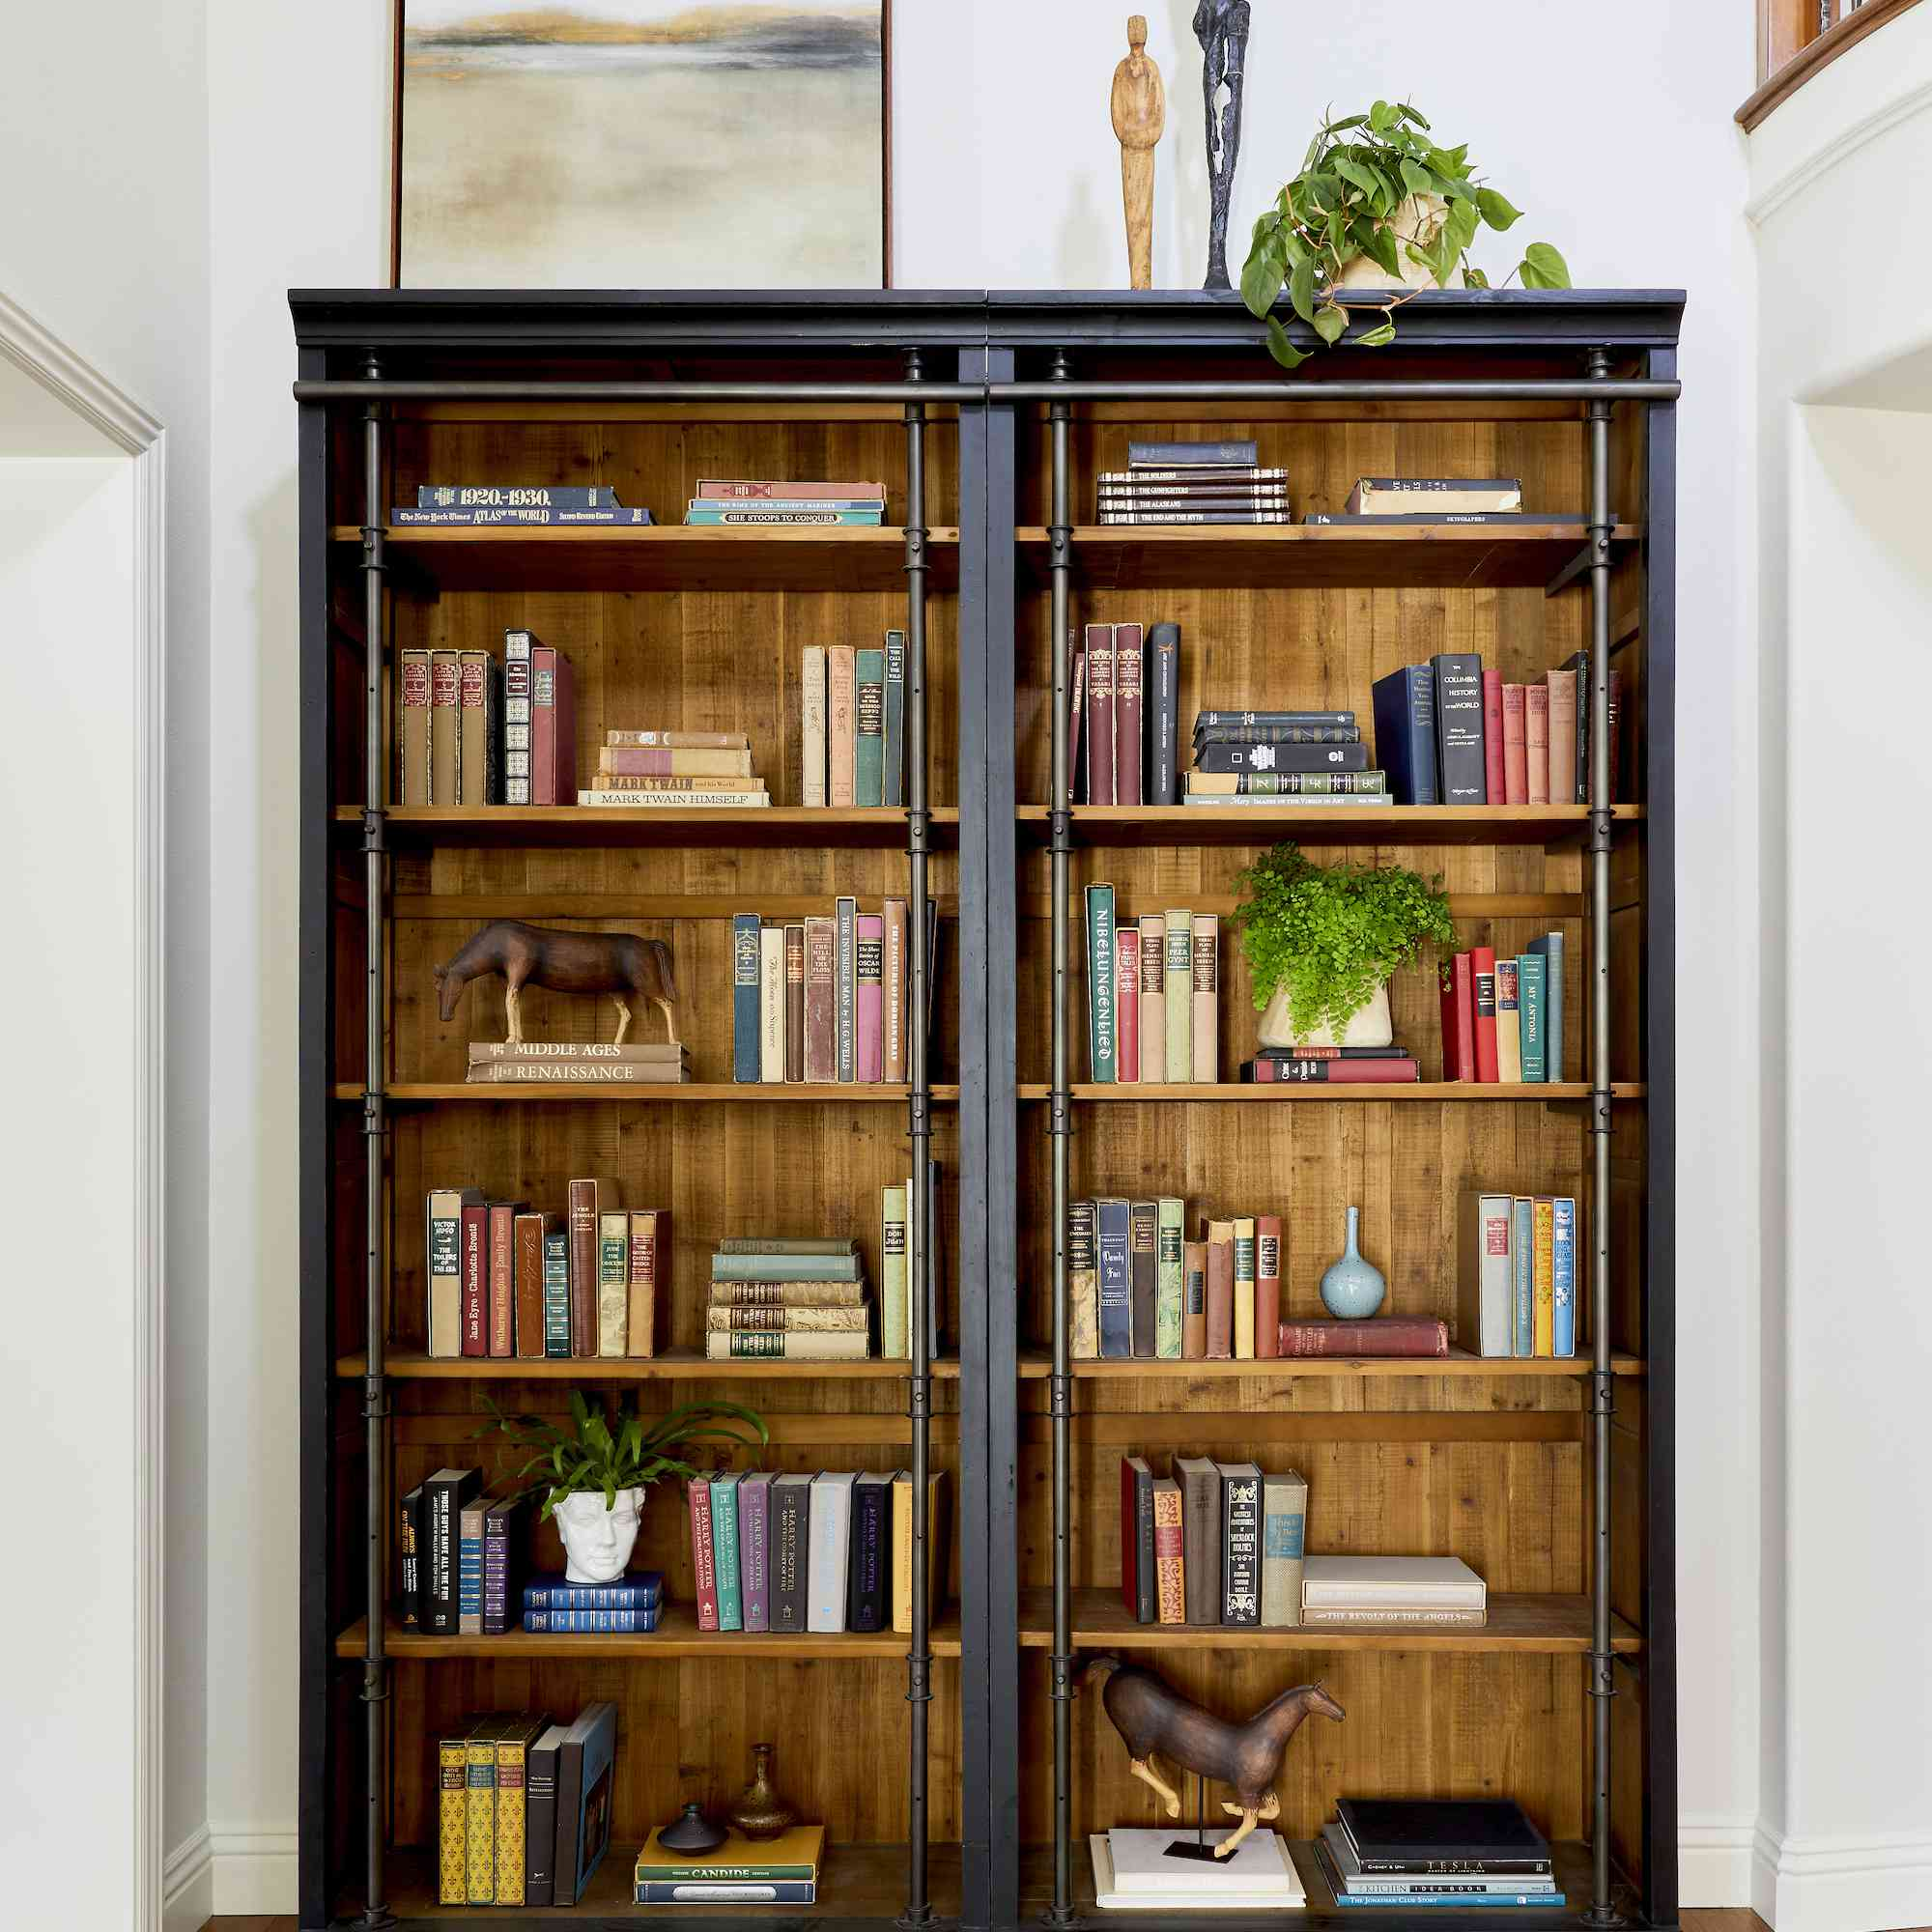 Bookcase filled with antique books and decor.